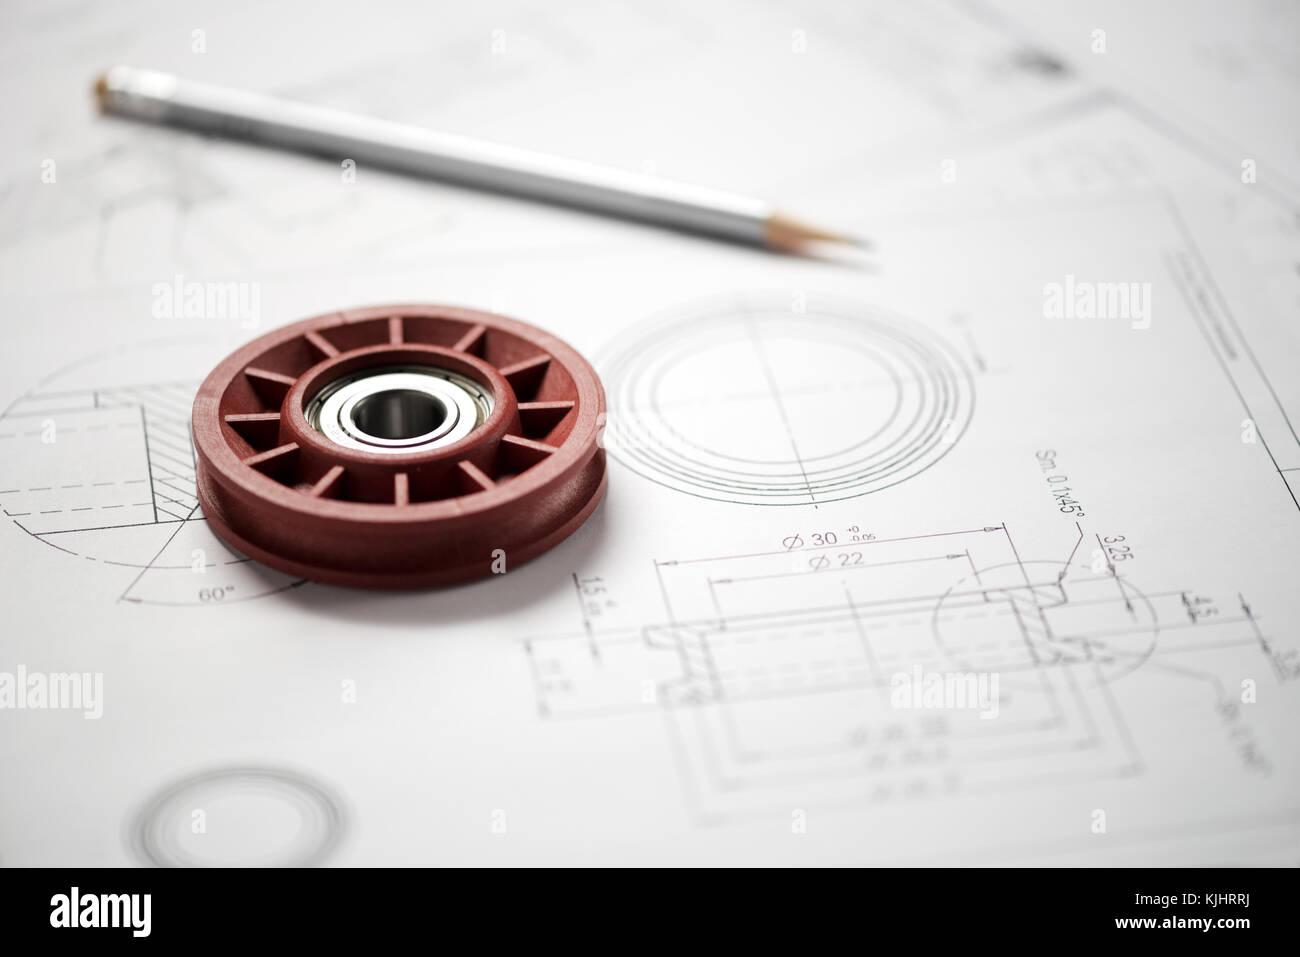 Plastic wheel bearing and grey pencil over blueprint with project drawings, close-up shot from high angle - Stock Image